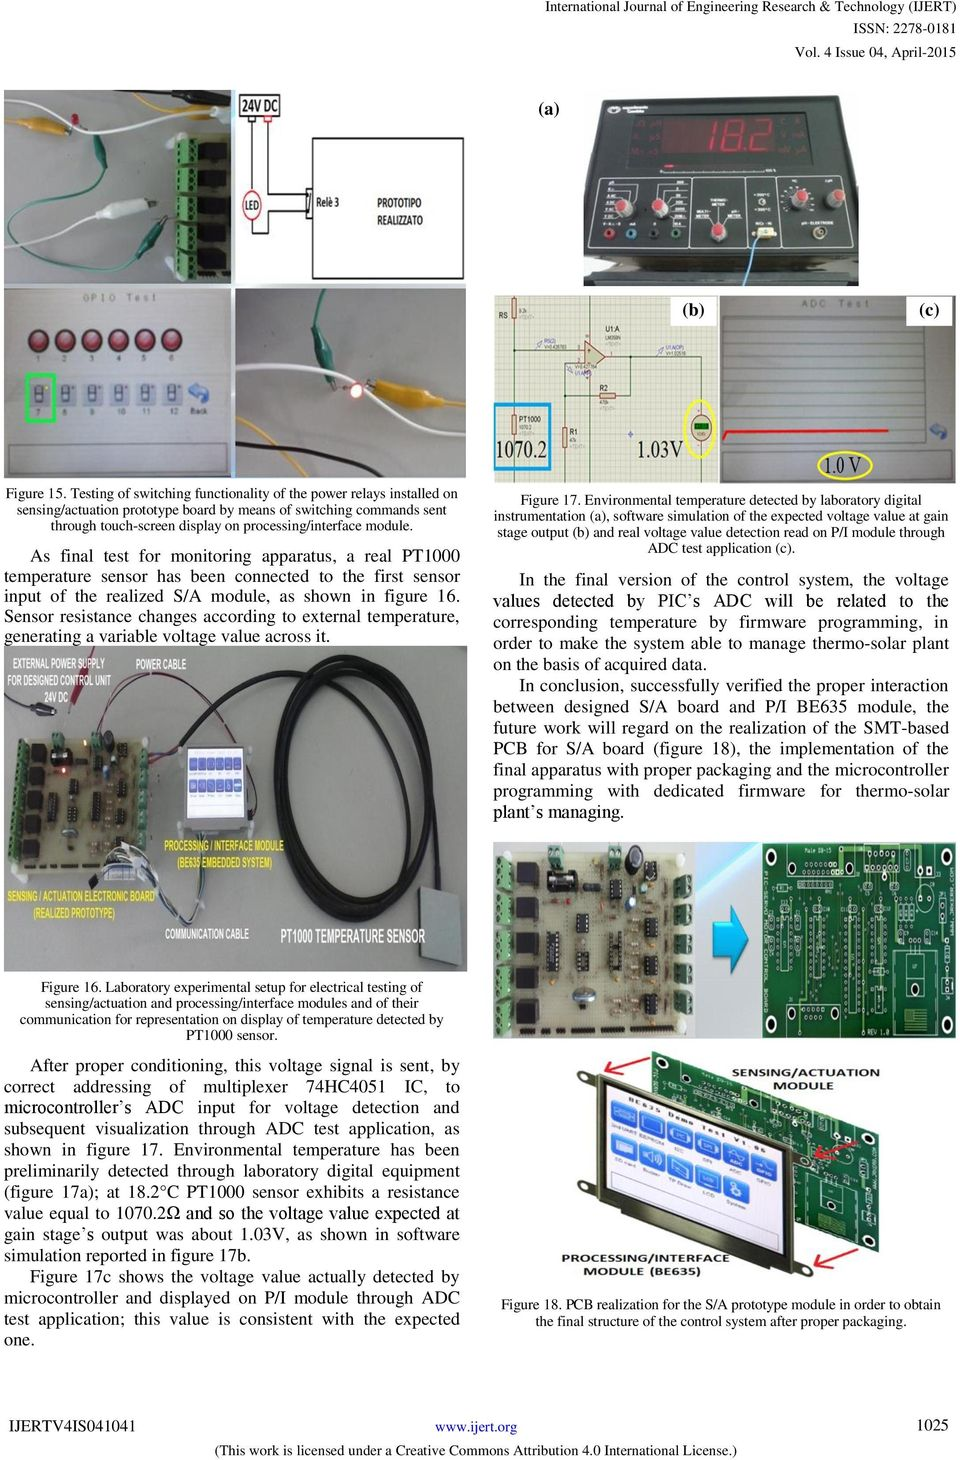 Thermo Solar Plant Managing And Monitoring By Electronic Ac Fan Speed Control Using Android Mobile Microtronics Technologies As Final Test For Apparatus A Real Pt1000 Temperature Sensor Has Been Connected To